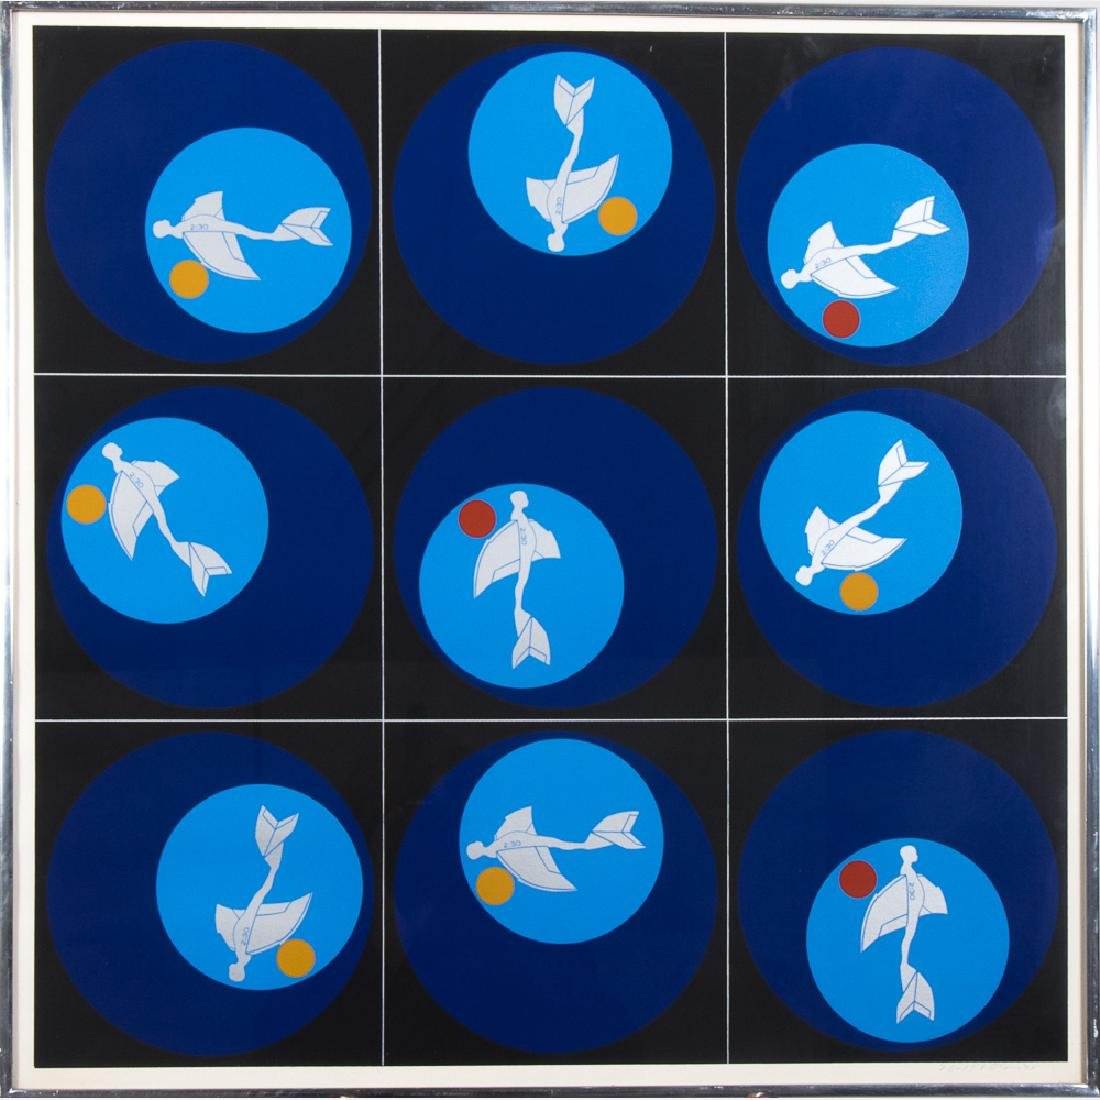 Ernest Trova (1927-2009) Shadows, Planes and Targets,